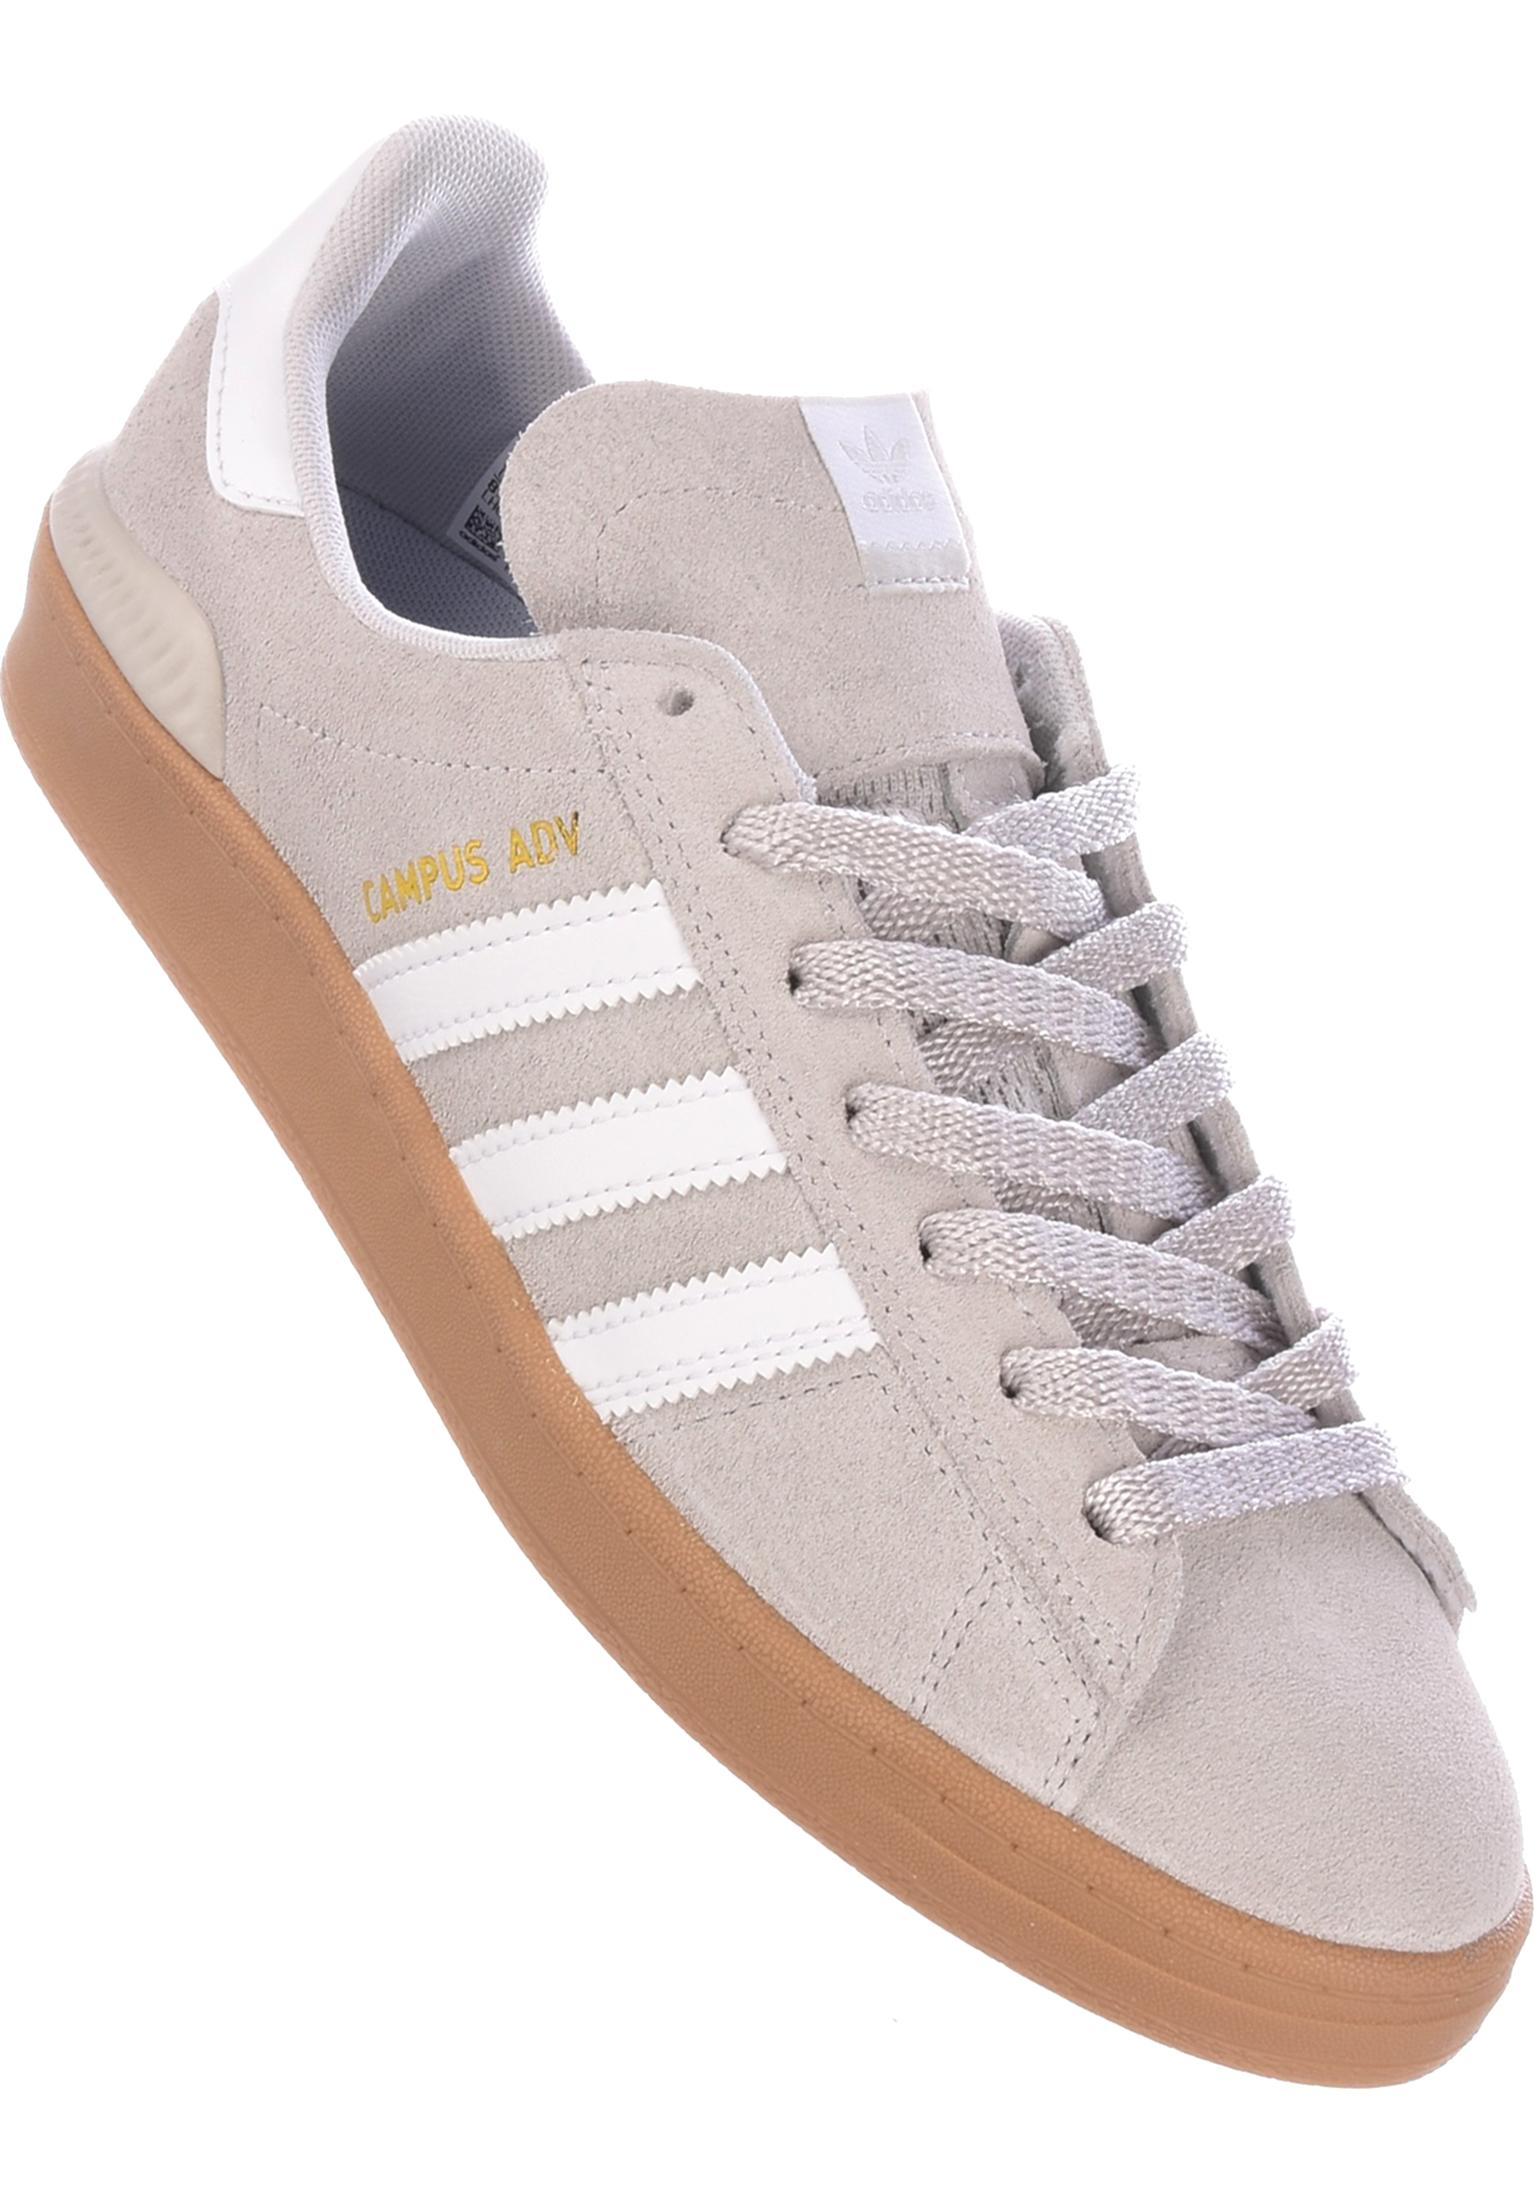 the latest d7e62 13d75 Campus ADV adidas-skateboarding Tutte le scarpe in grey-white-gold da Uomo    Titus